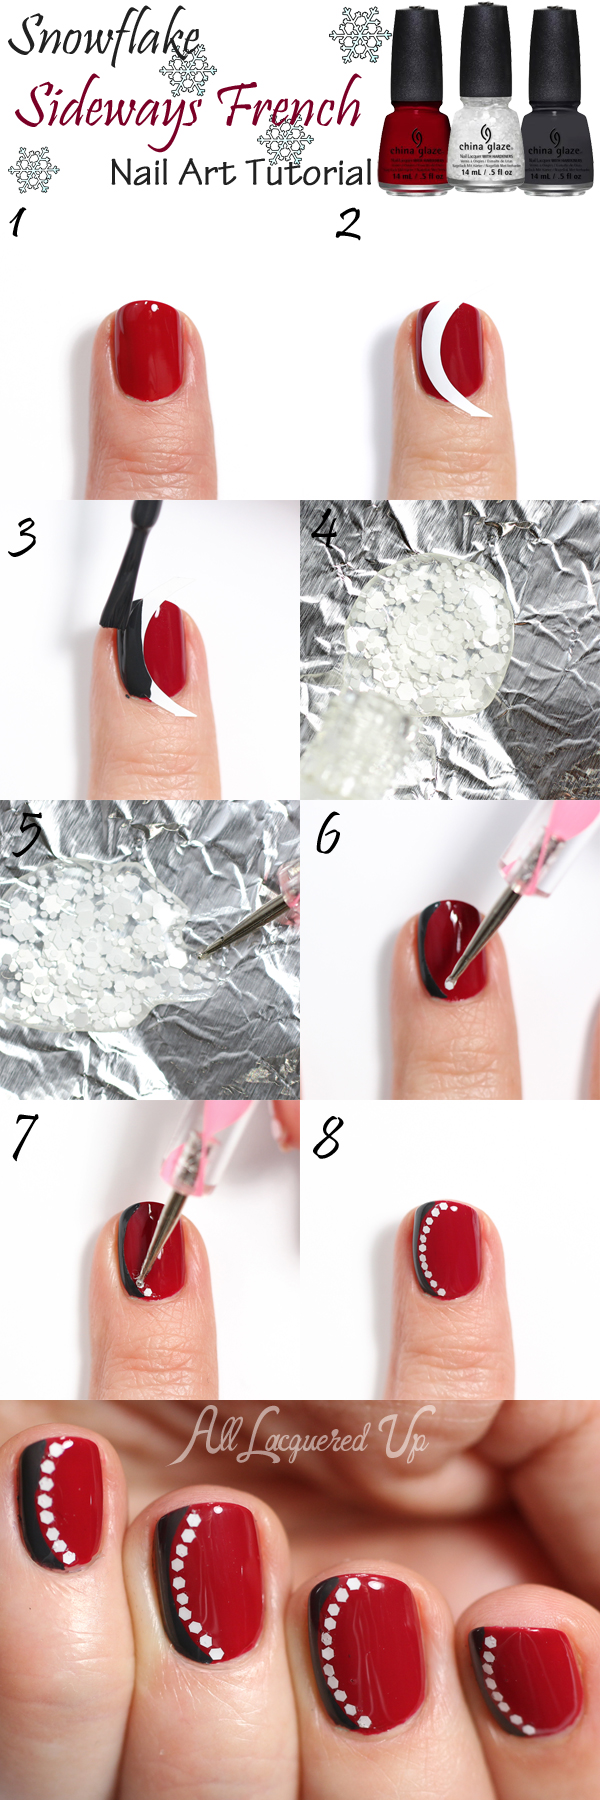 Snowflake Sideways French Manicure Nail Art Tutorial via @alllacqueredup